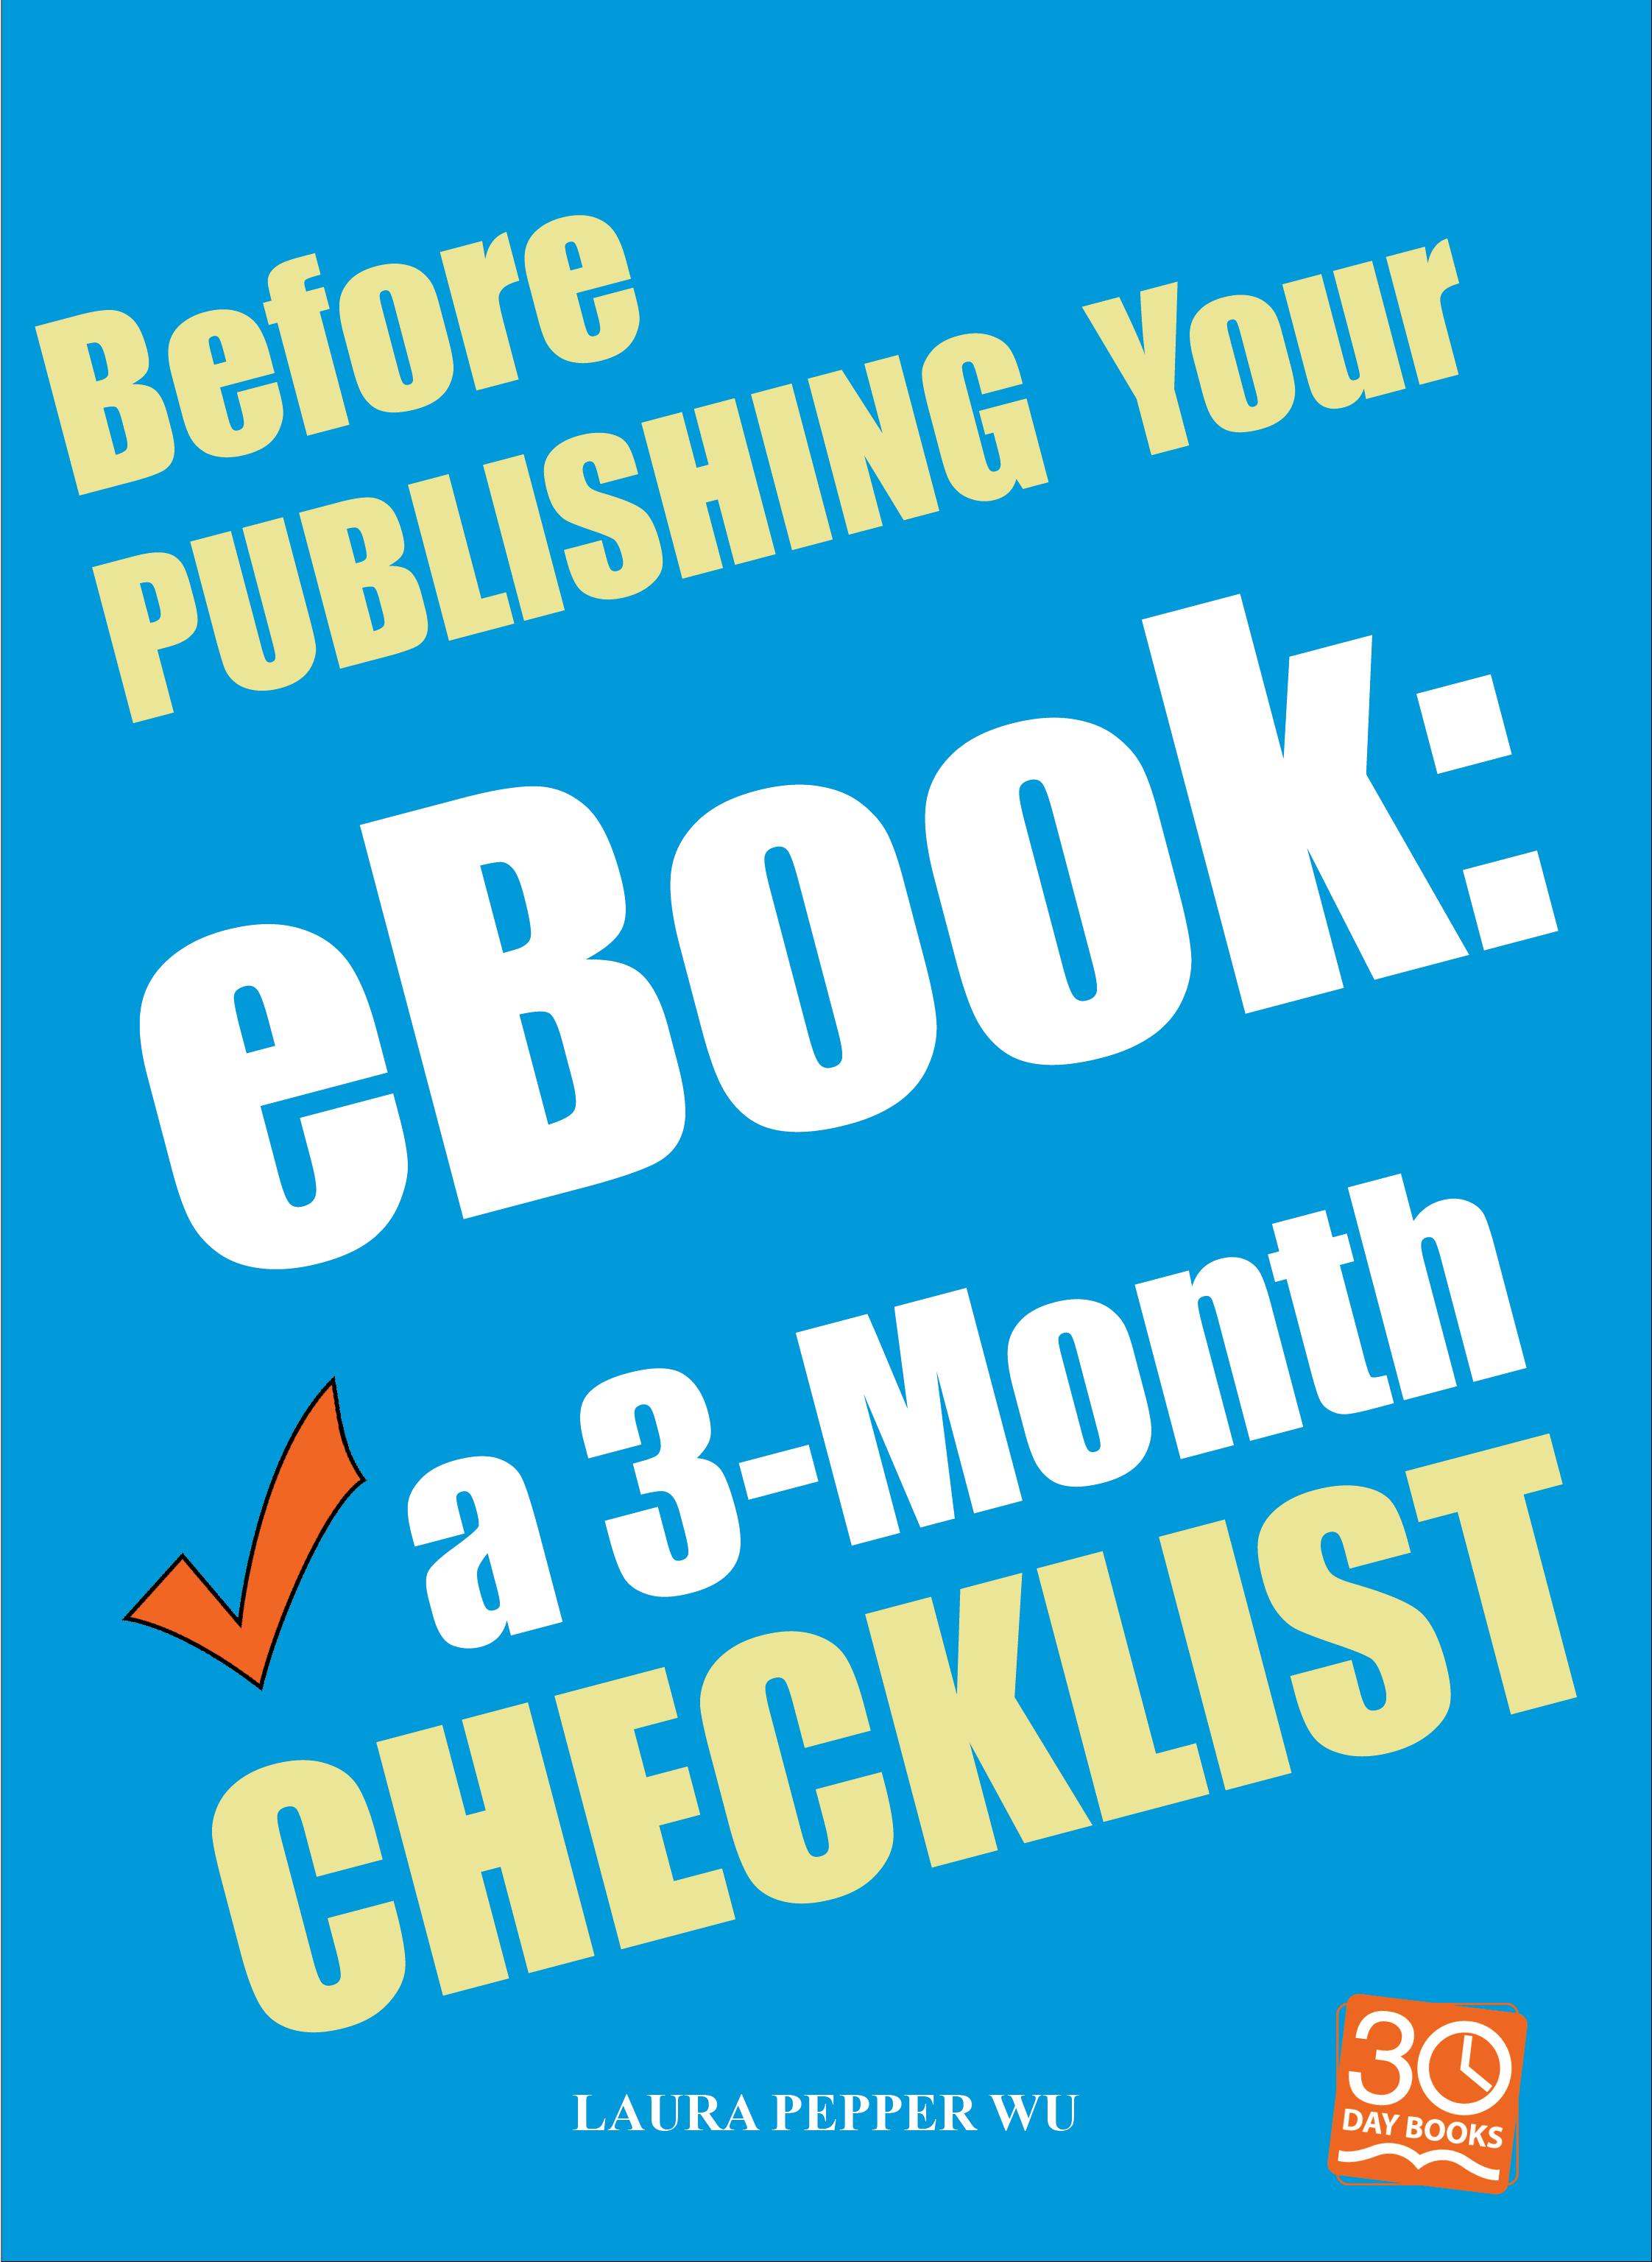 'Before Publishing Your eBook: a 3-Month Checklist' is here!